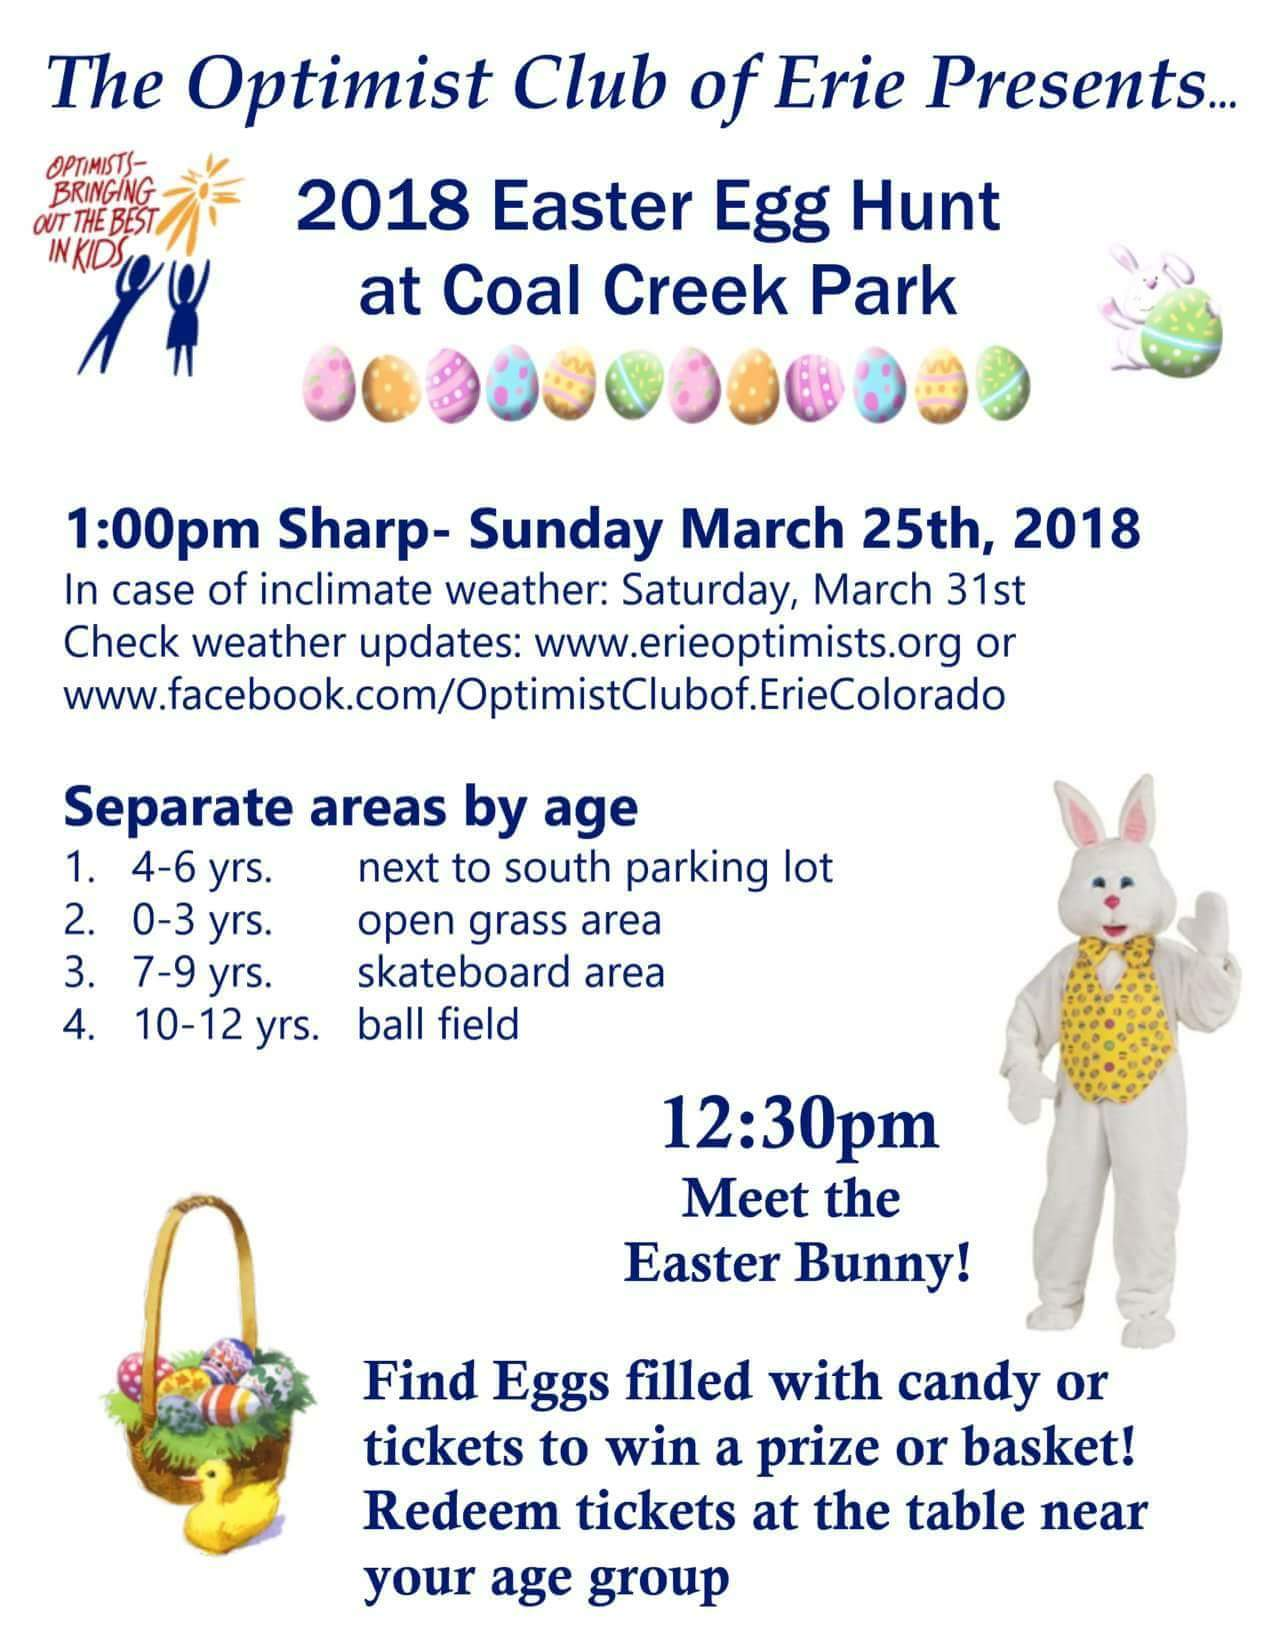 Erie Optimists Egg Hunt 2018